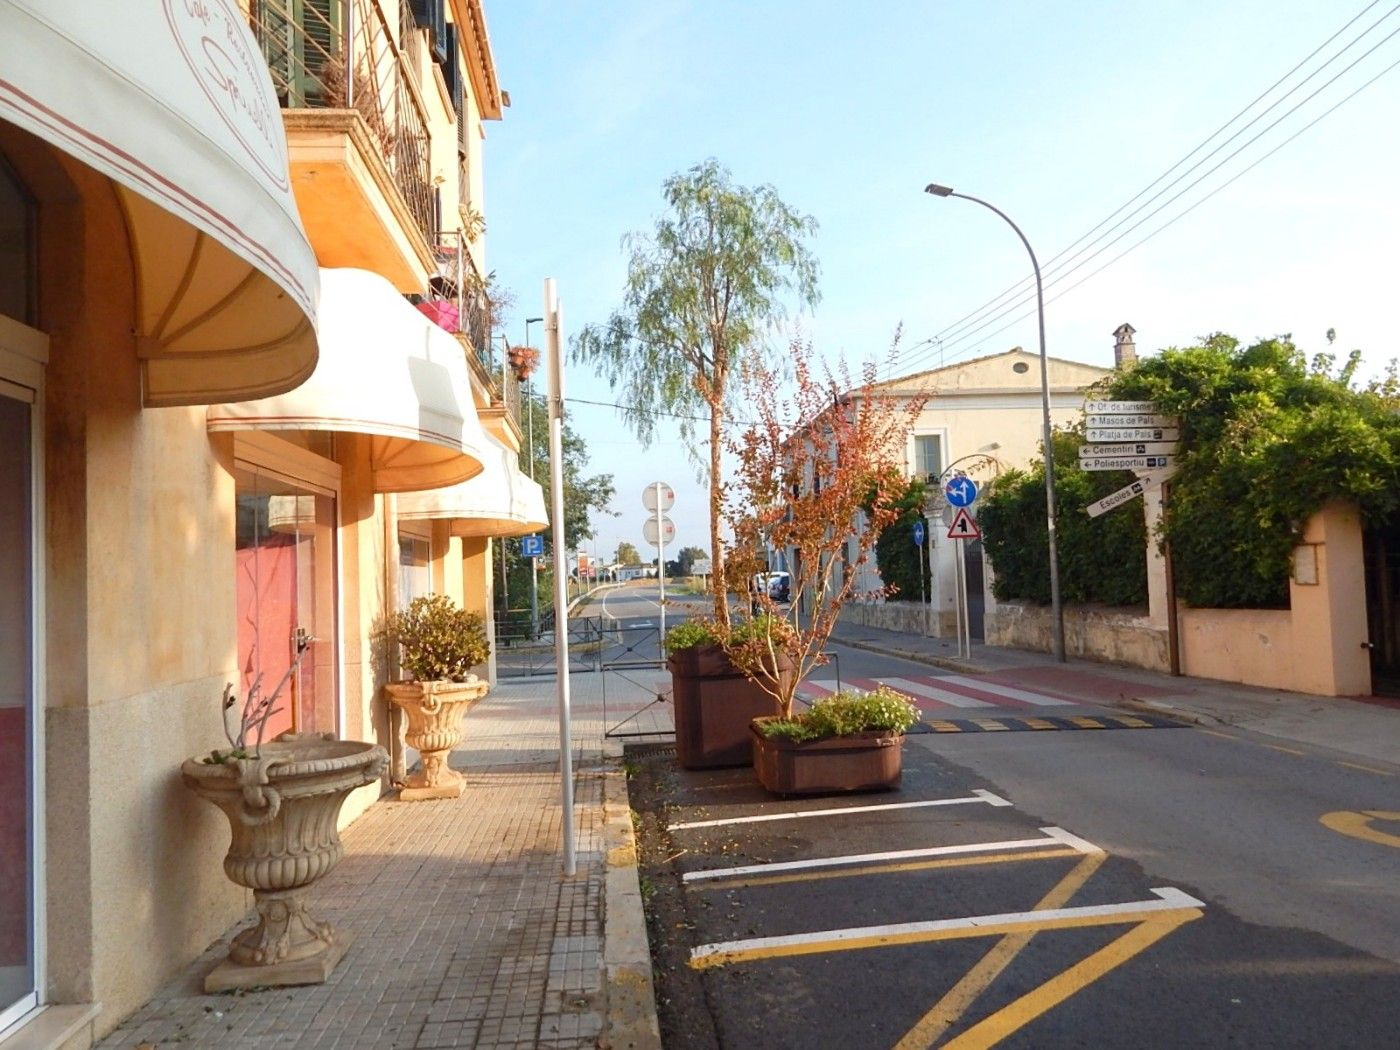 Local Comercial  Carrer enginyer algarra. Local comercial en el centro